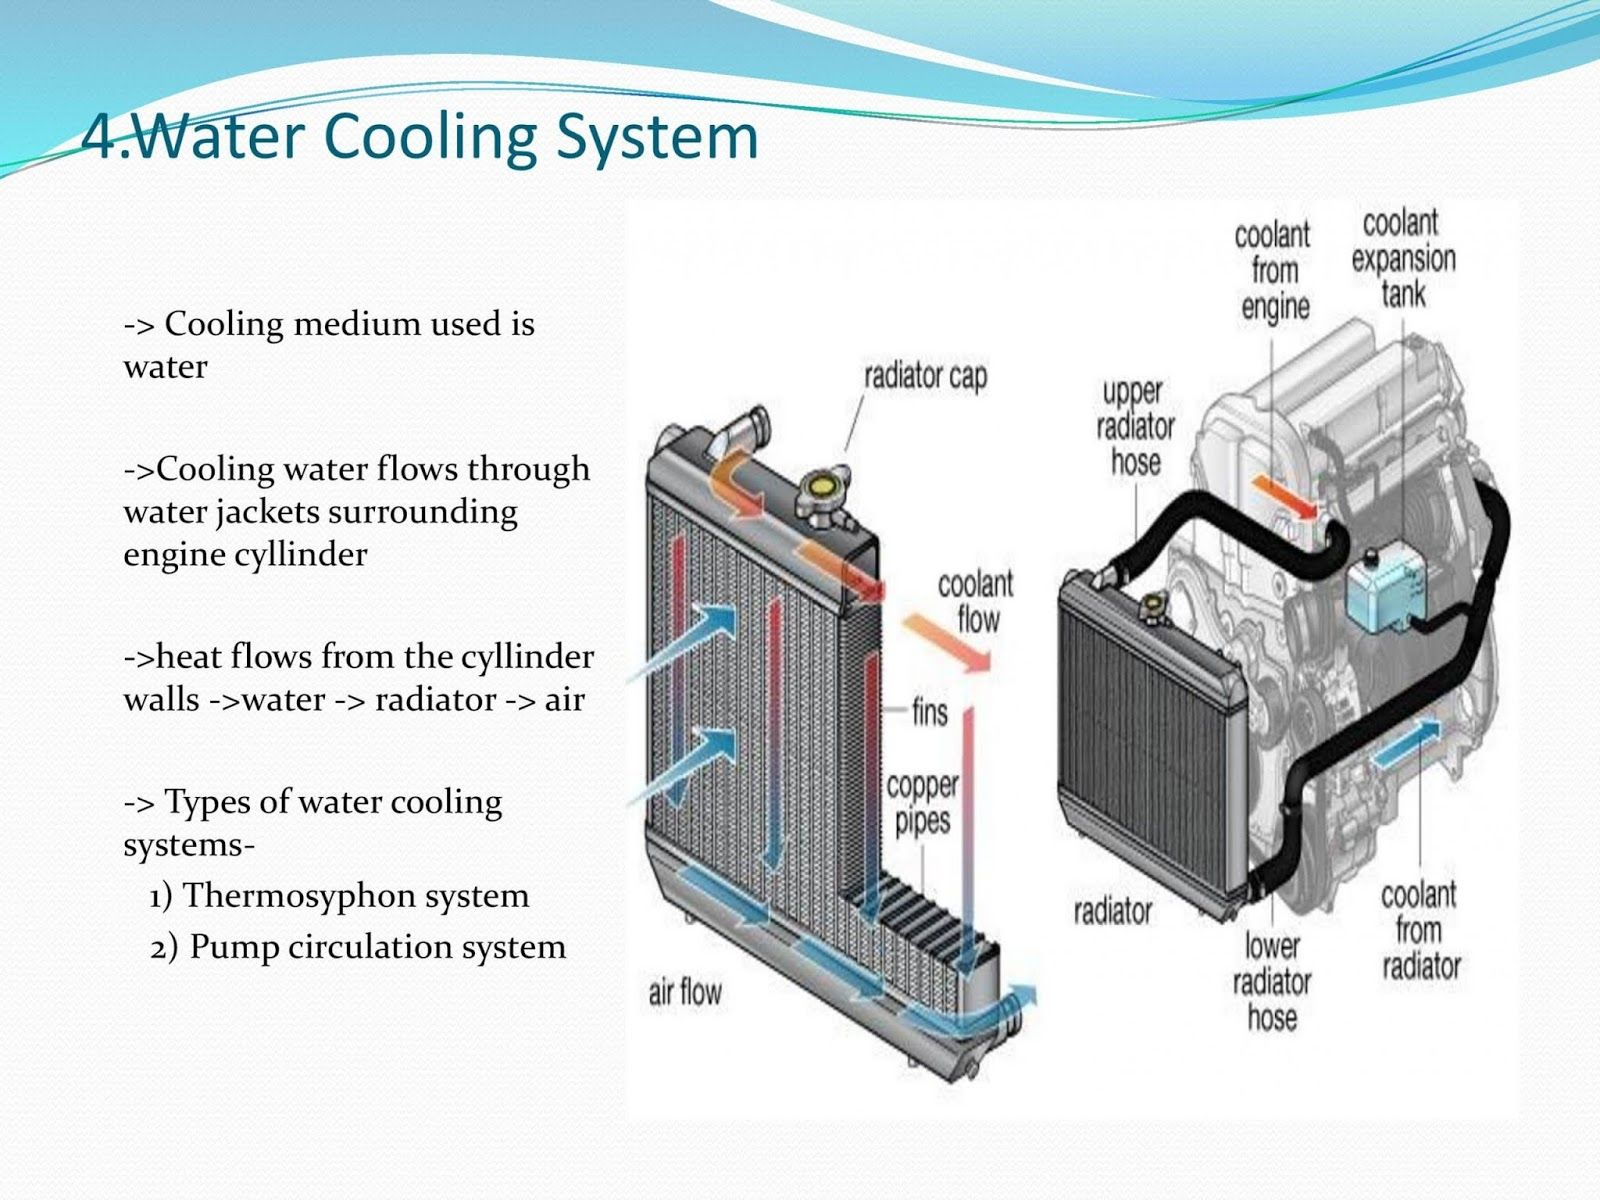 Water Cooled Engine Diagram Free in 2020 Water cooling